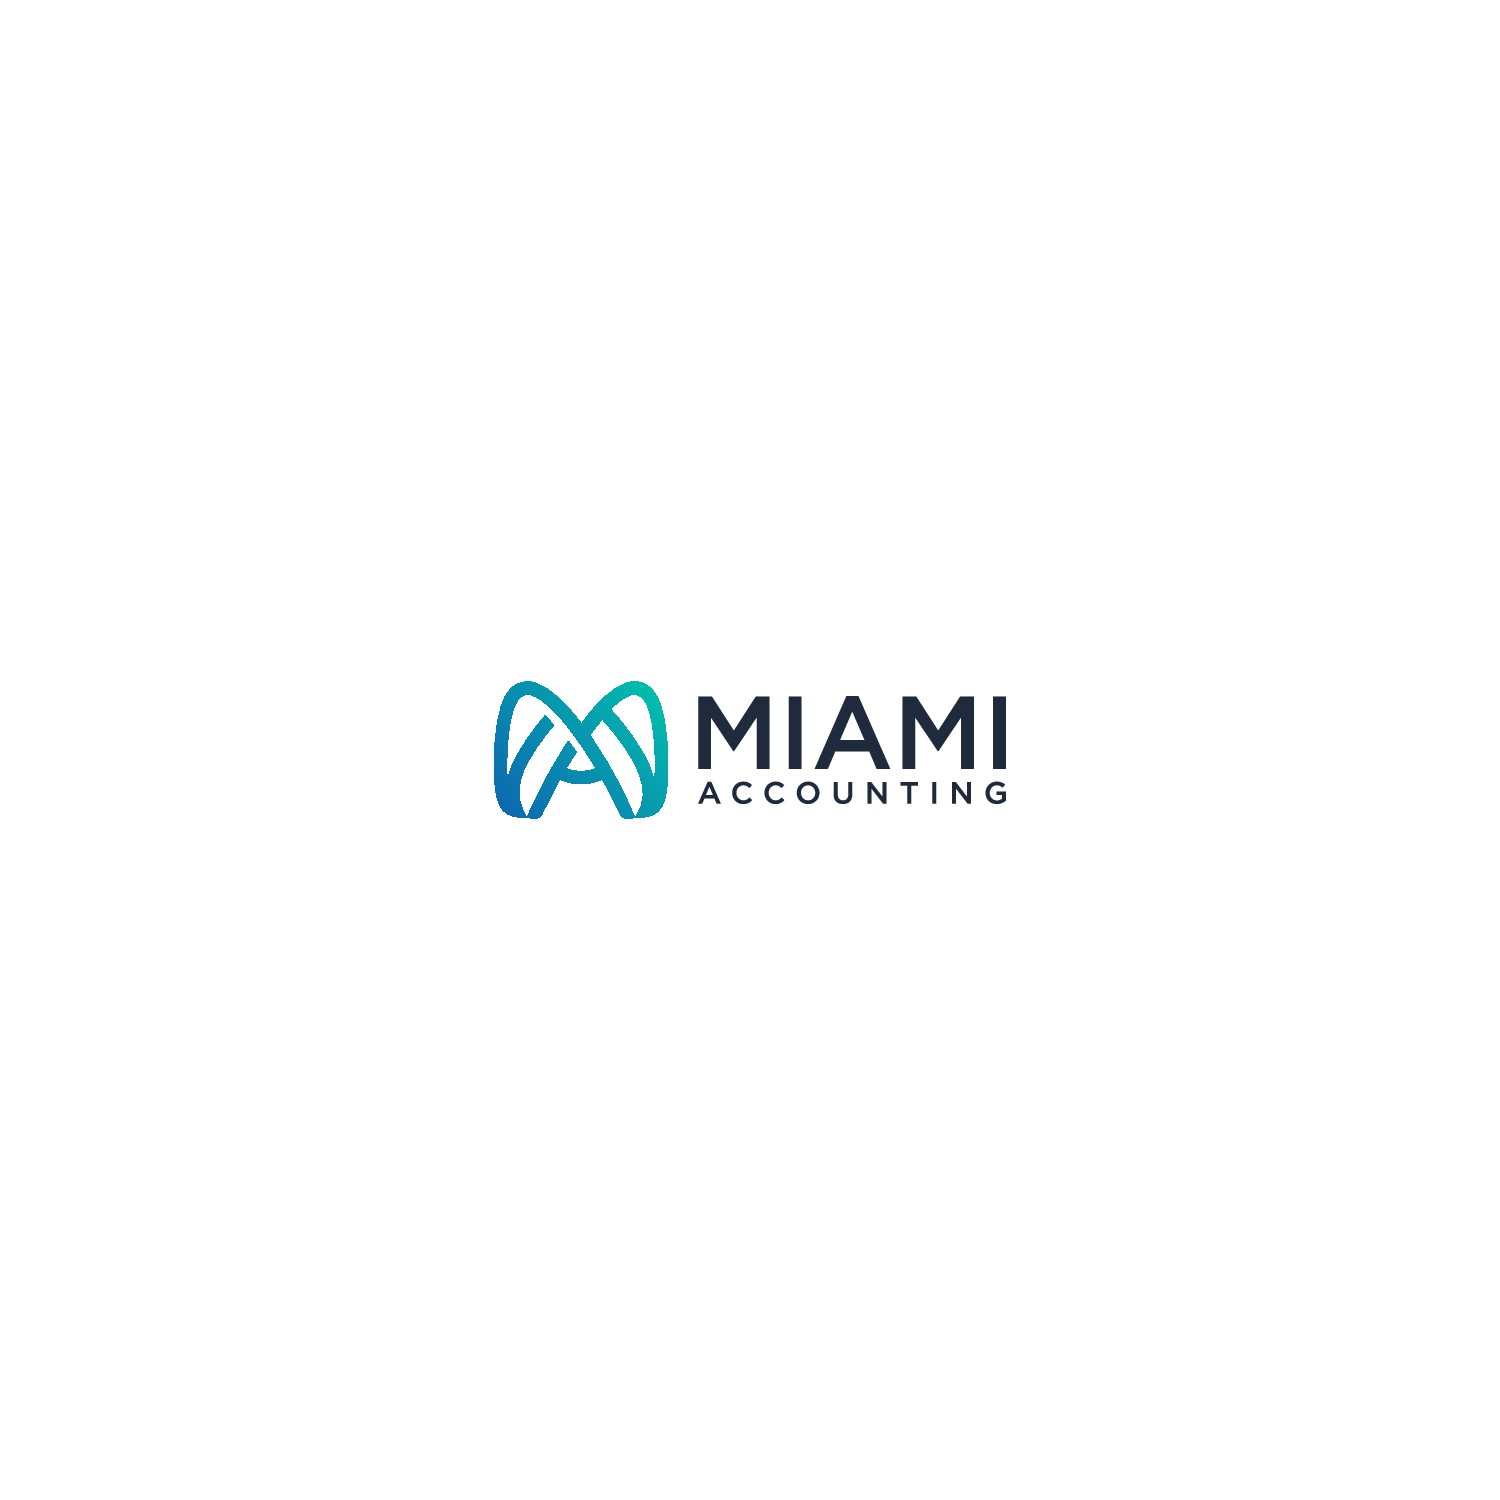 Accounting for Small Miami Businesses LOGO Project